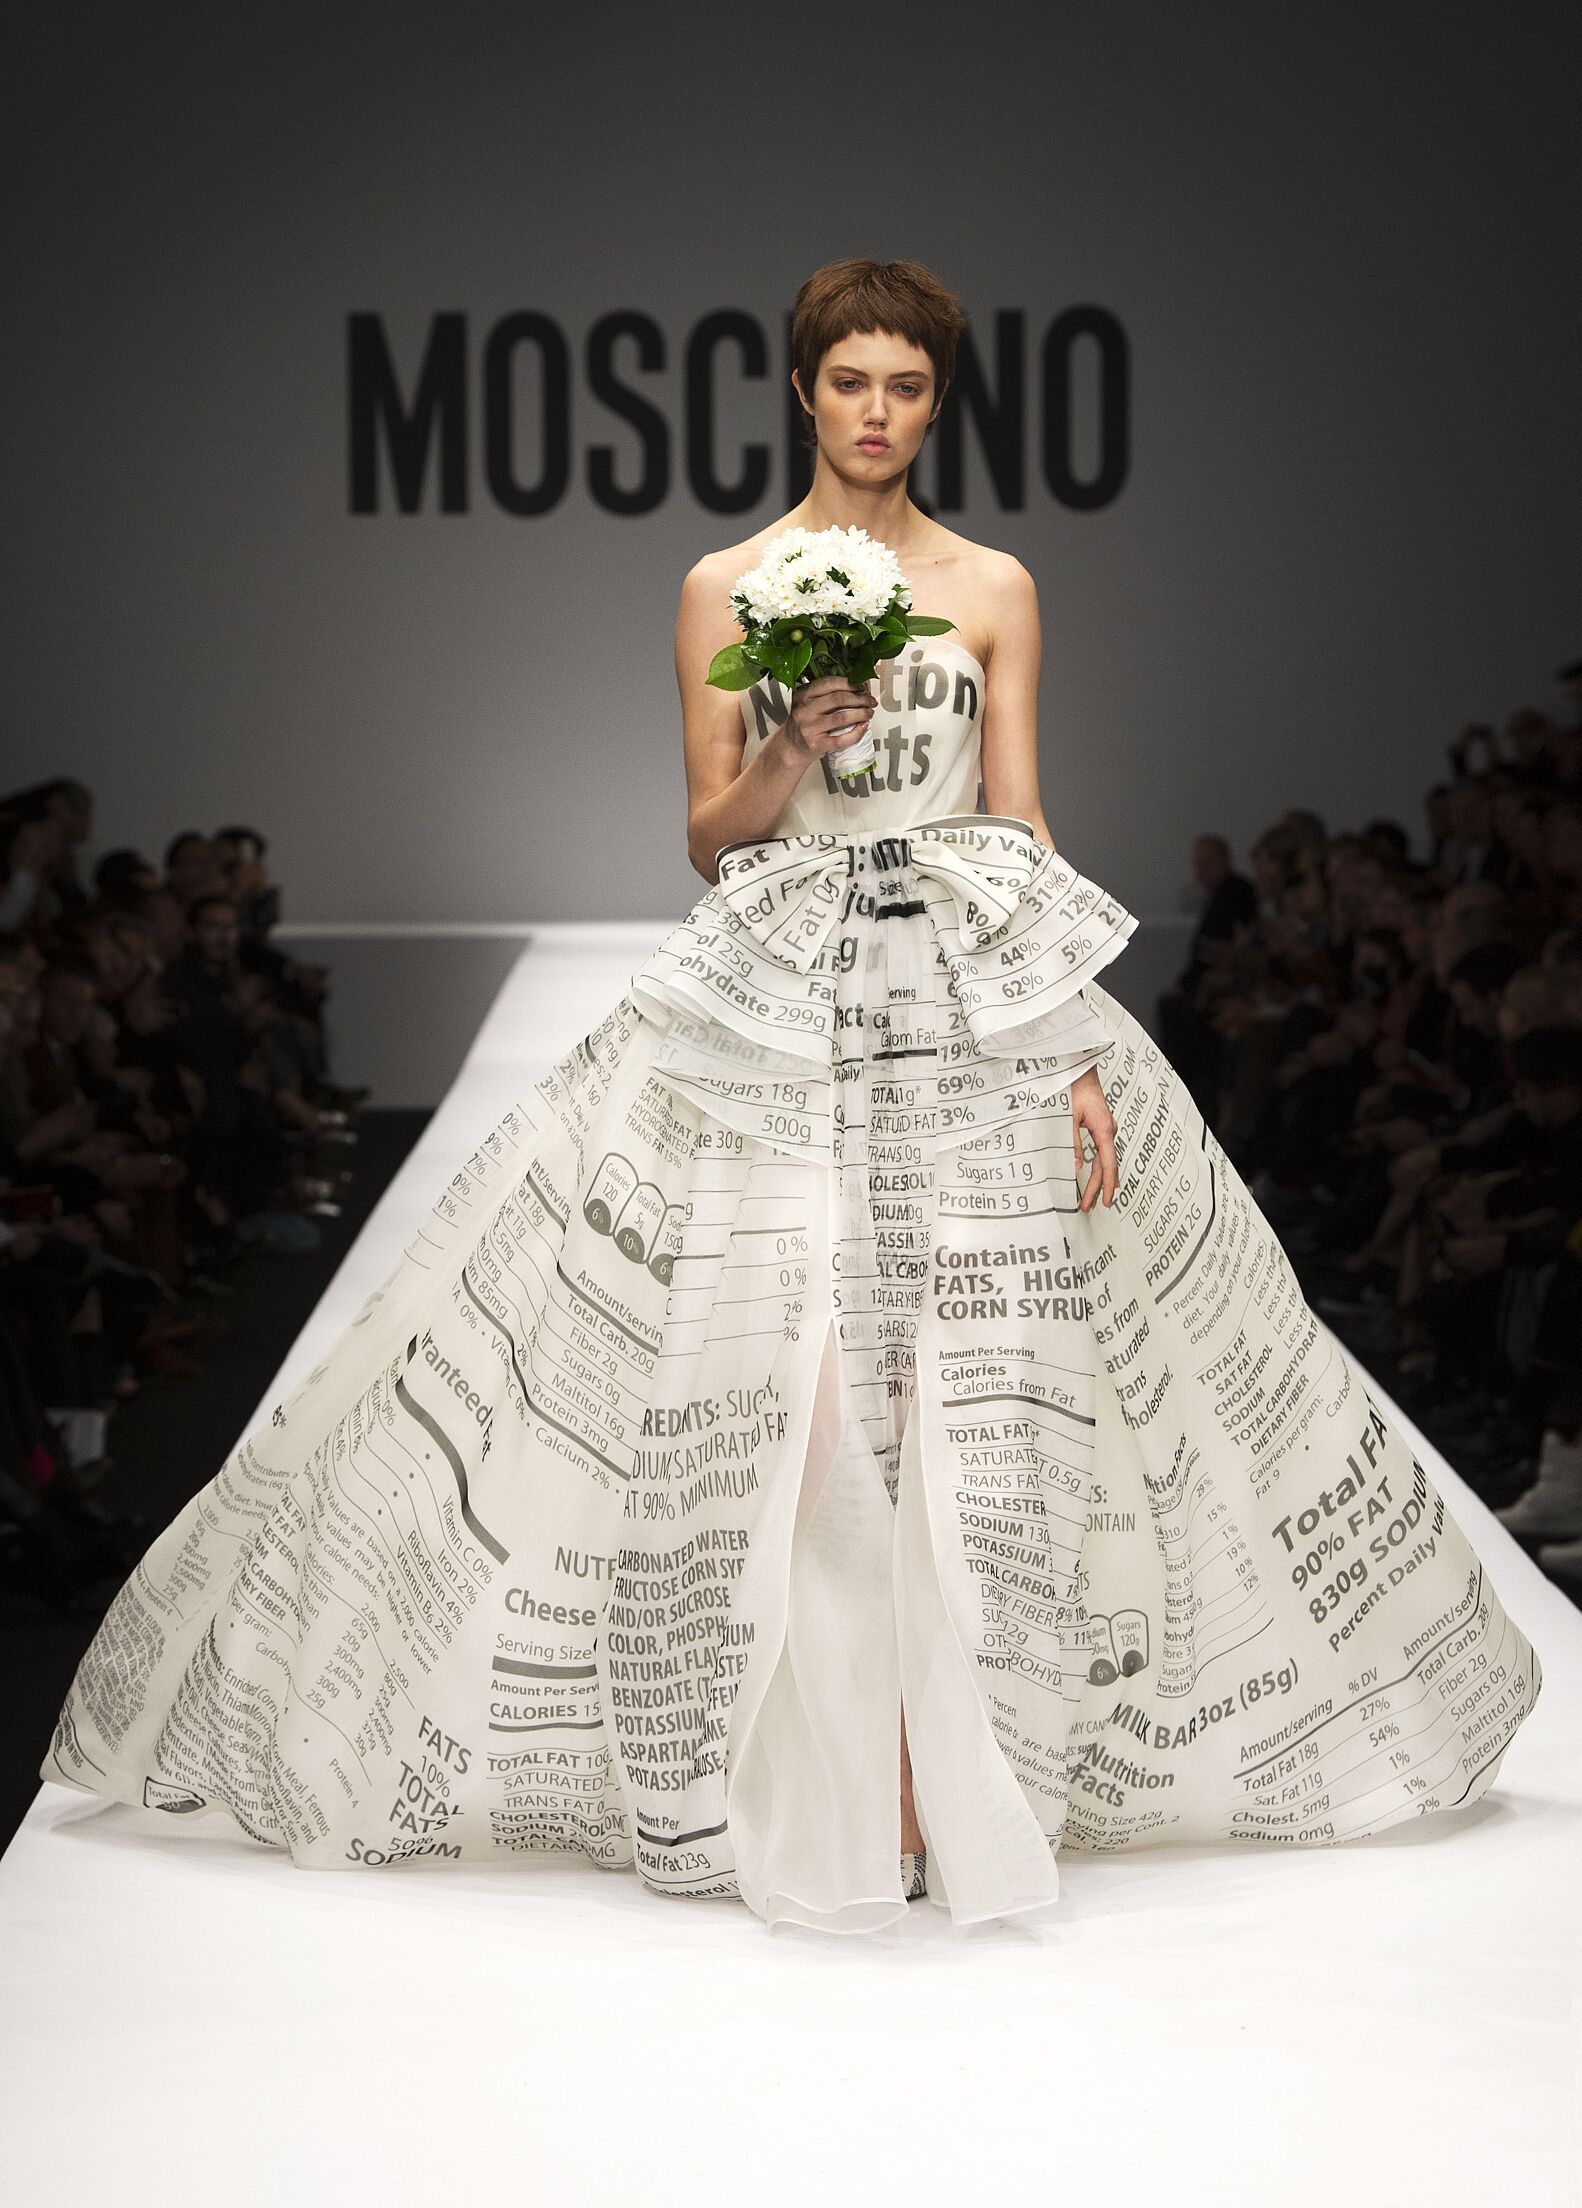 Winter Dress Moschino 2014 Woman